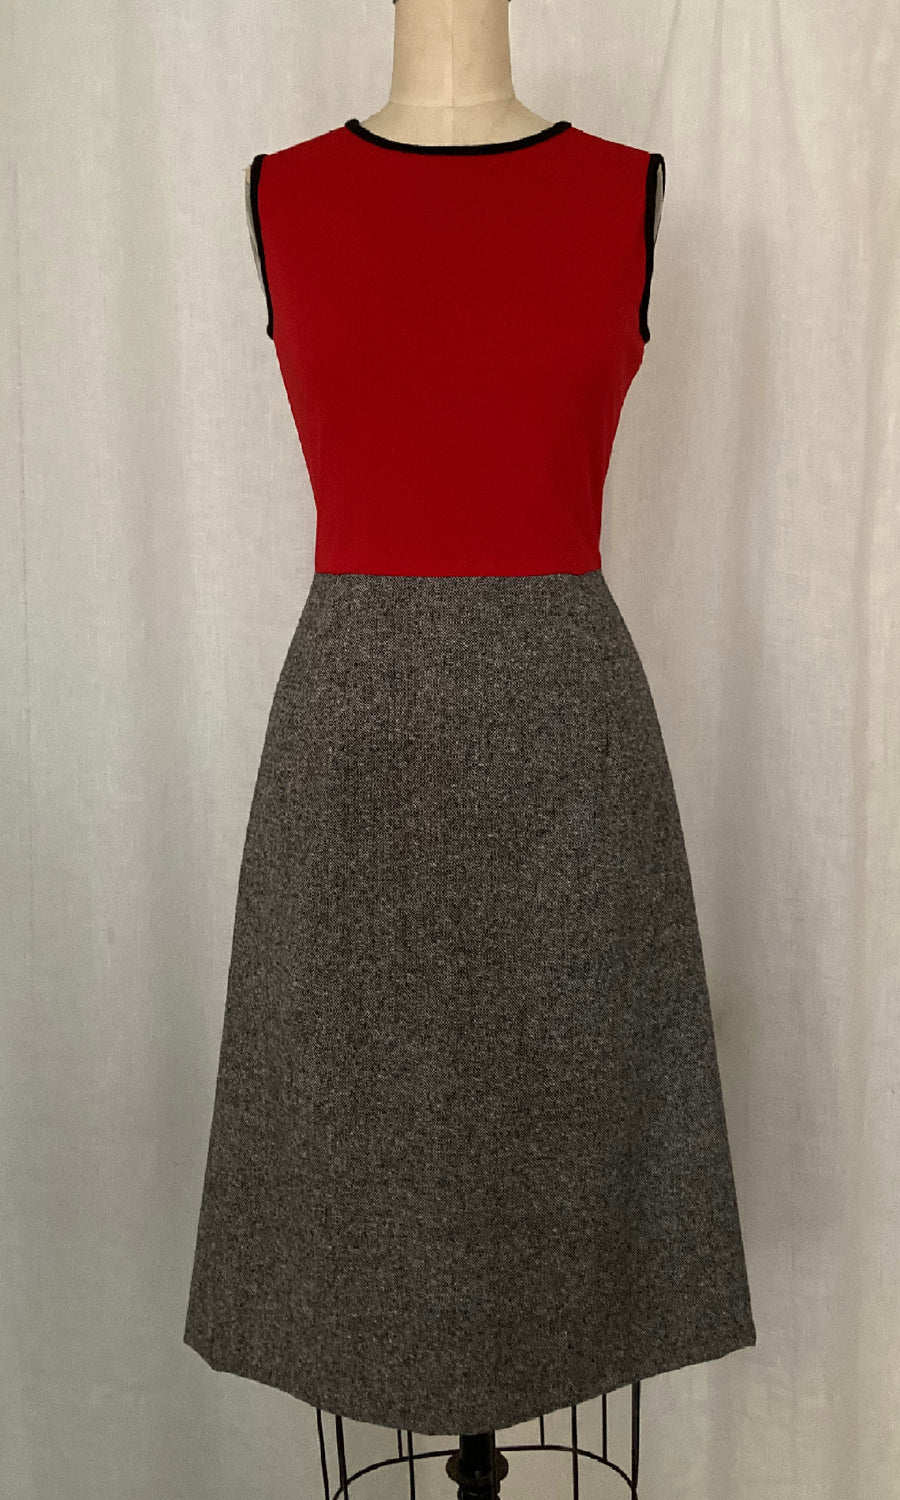 Jersey Knit and Wool Day Dress, size Small